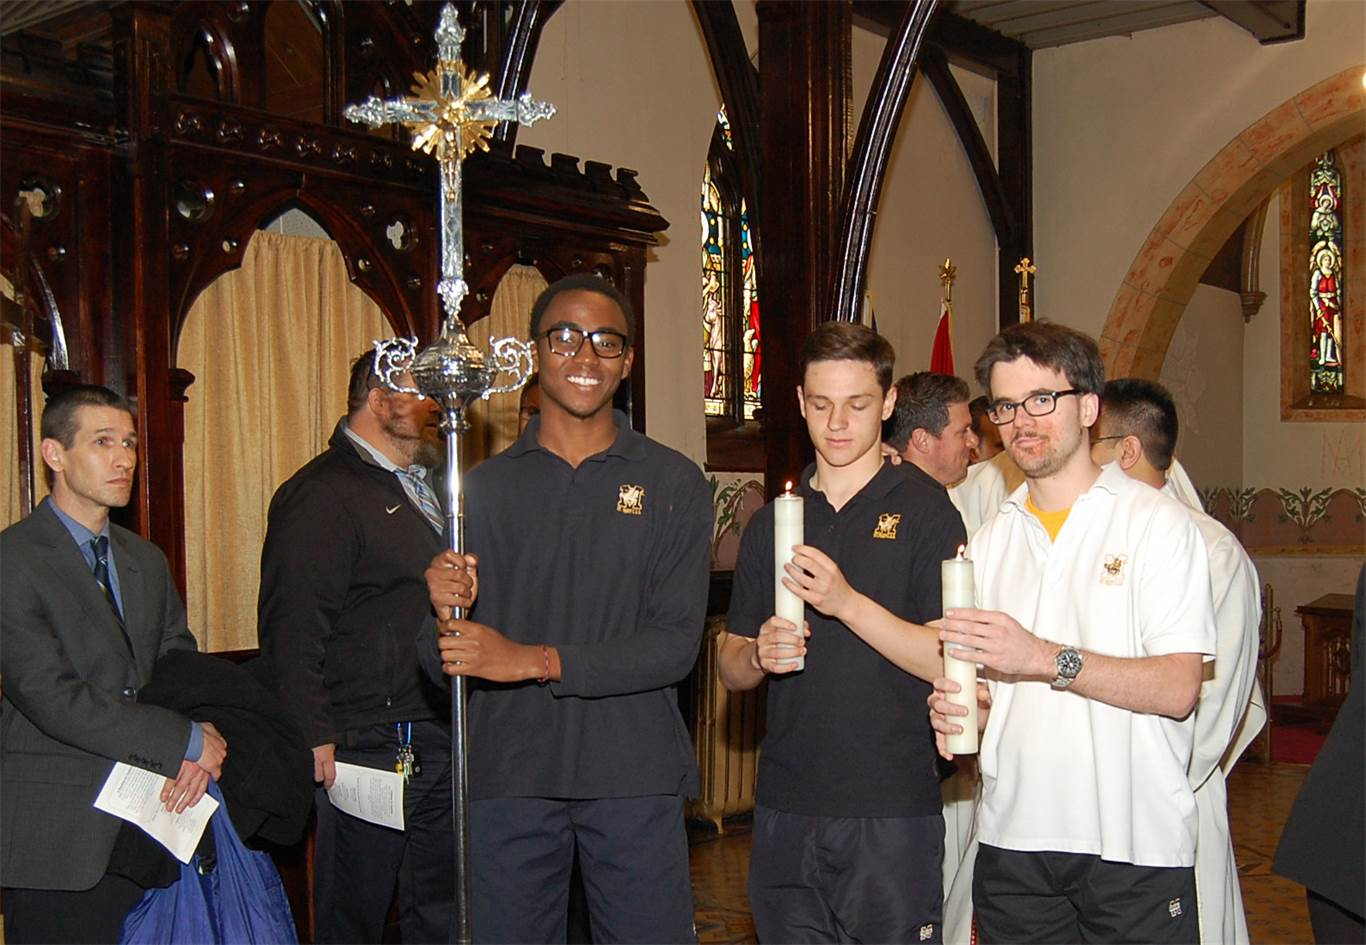 Cross-bearer and acolytes, from left to right: David Kondah, Ezra Campanelli and David Minnes, St. Mary.